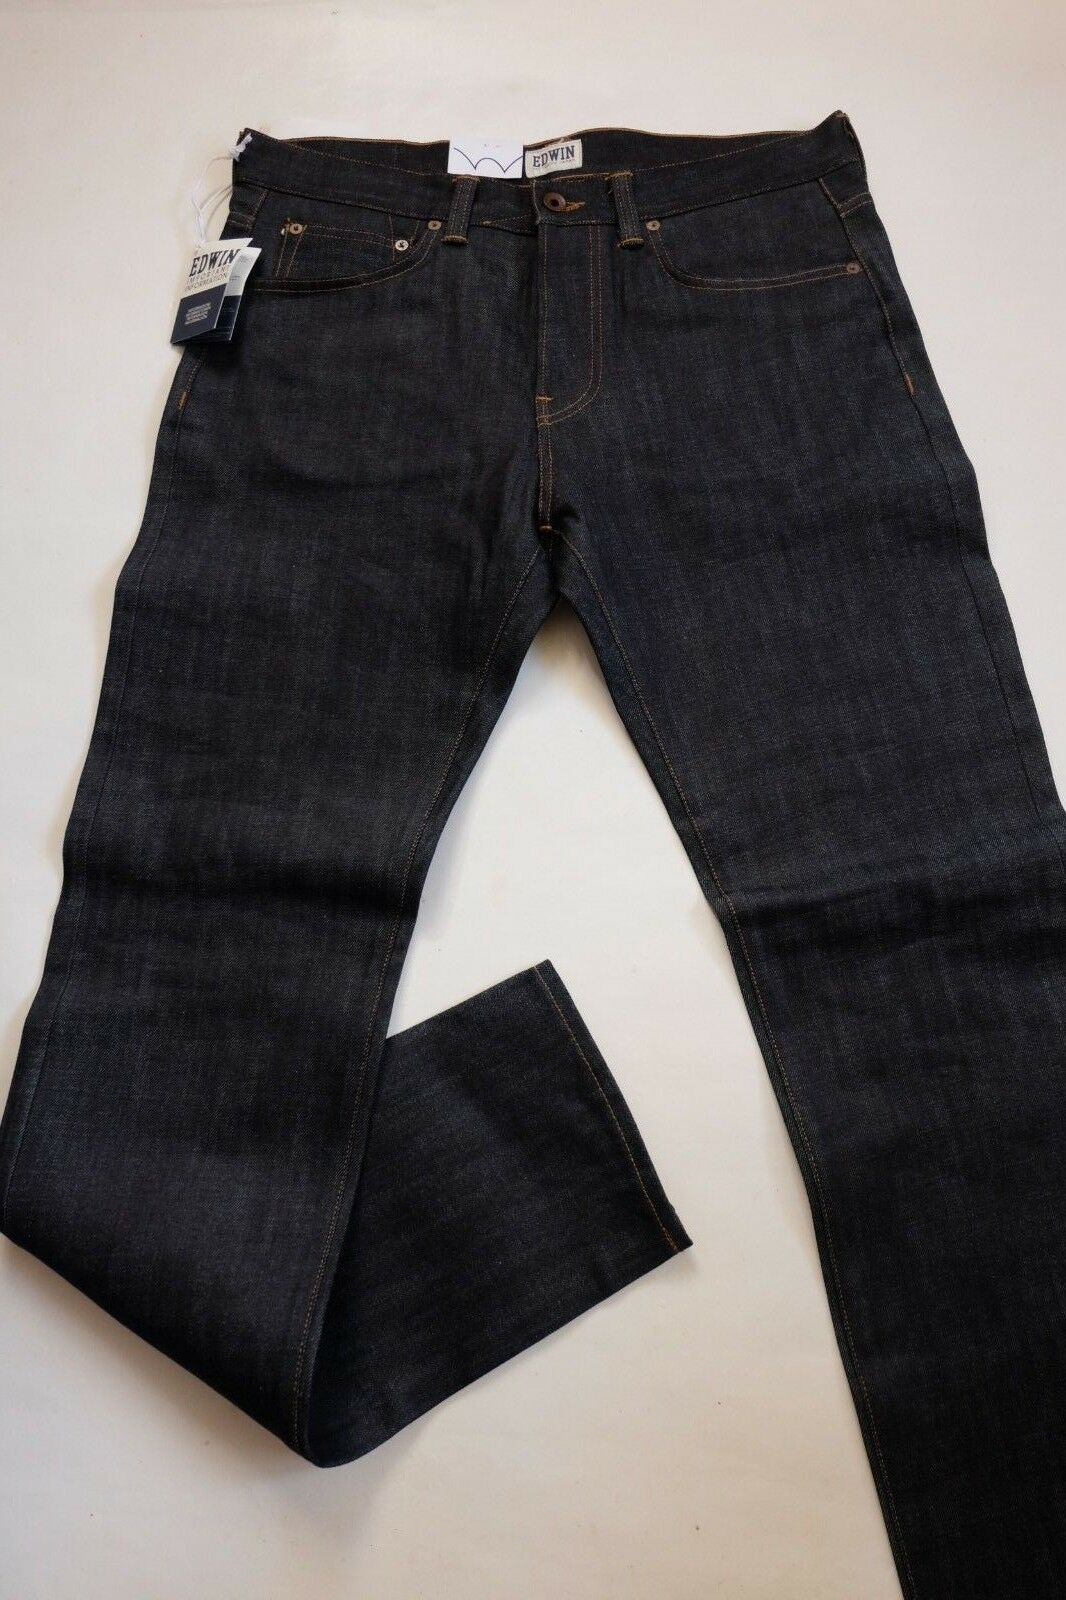 JEANS EDWIN HOMME ED 80 SLIM TAPERED (white listed-unwashed)   W30 L34  VAL